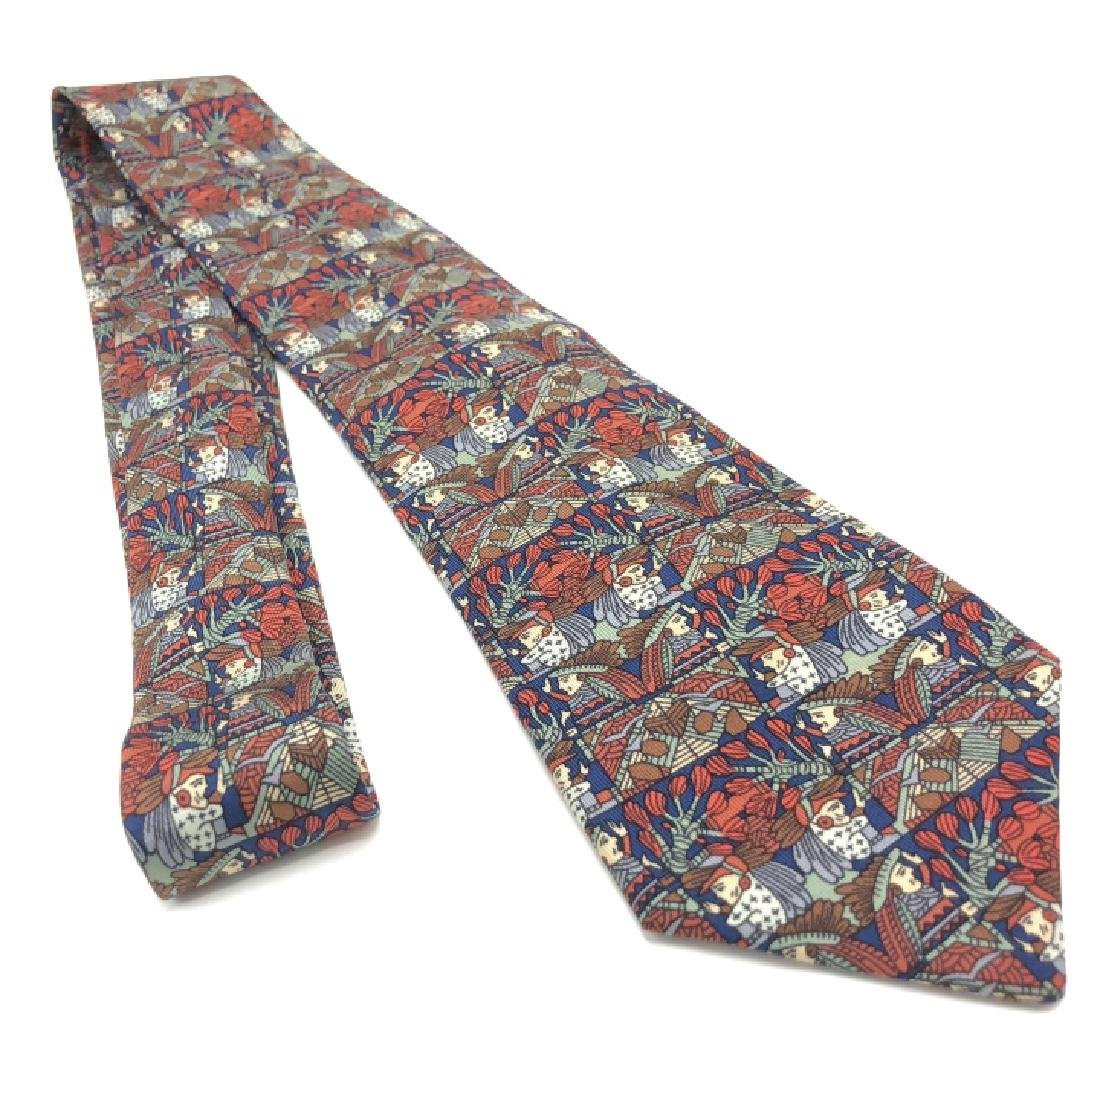 Vintage Authentic Hermes Graphic Men's Tie - 3